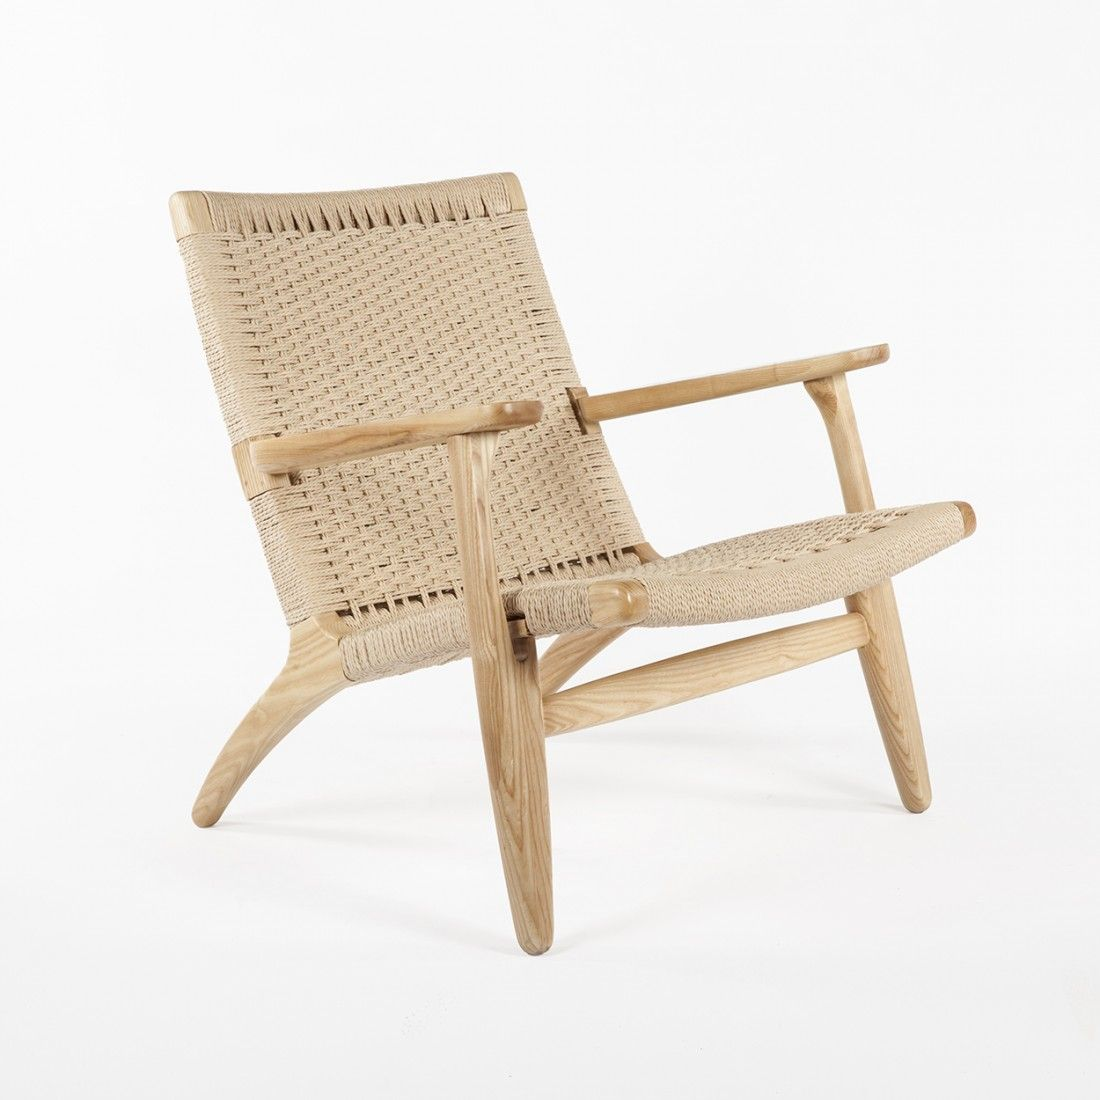 ch25 lounge chair 椅子 家具 藤